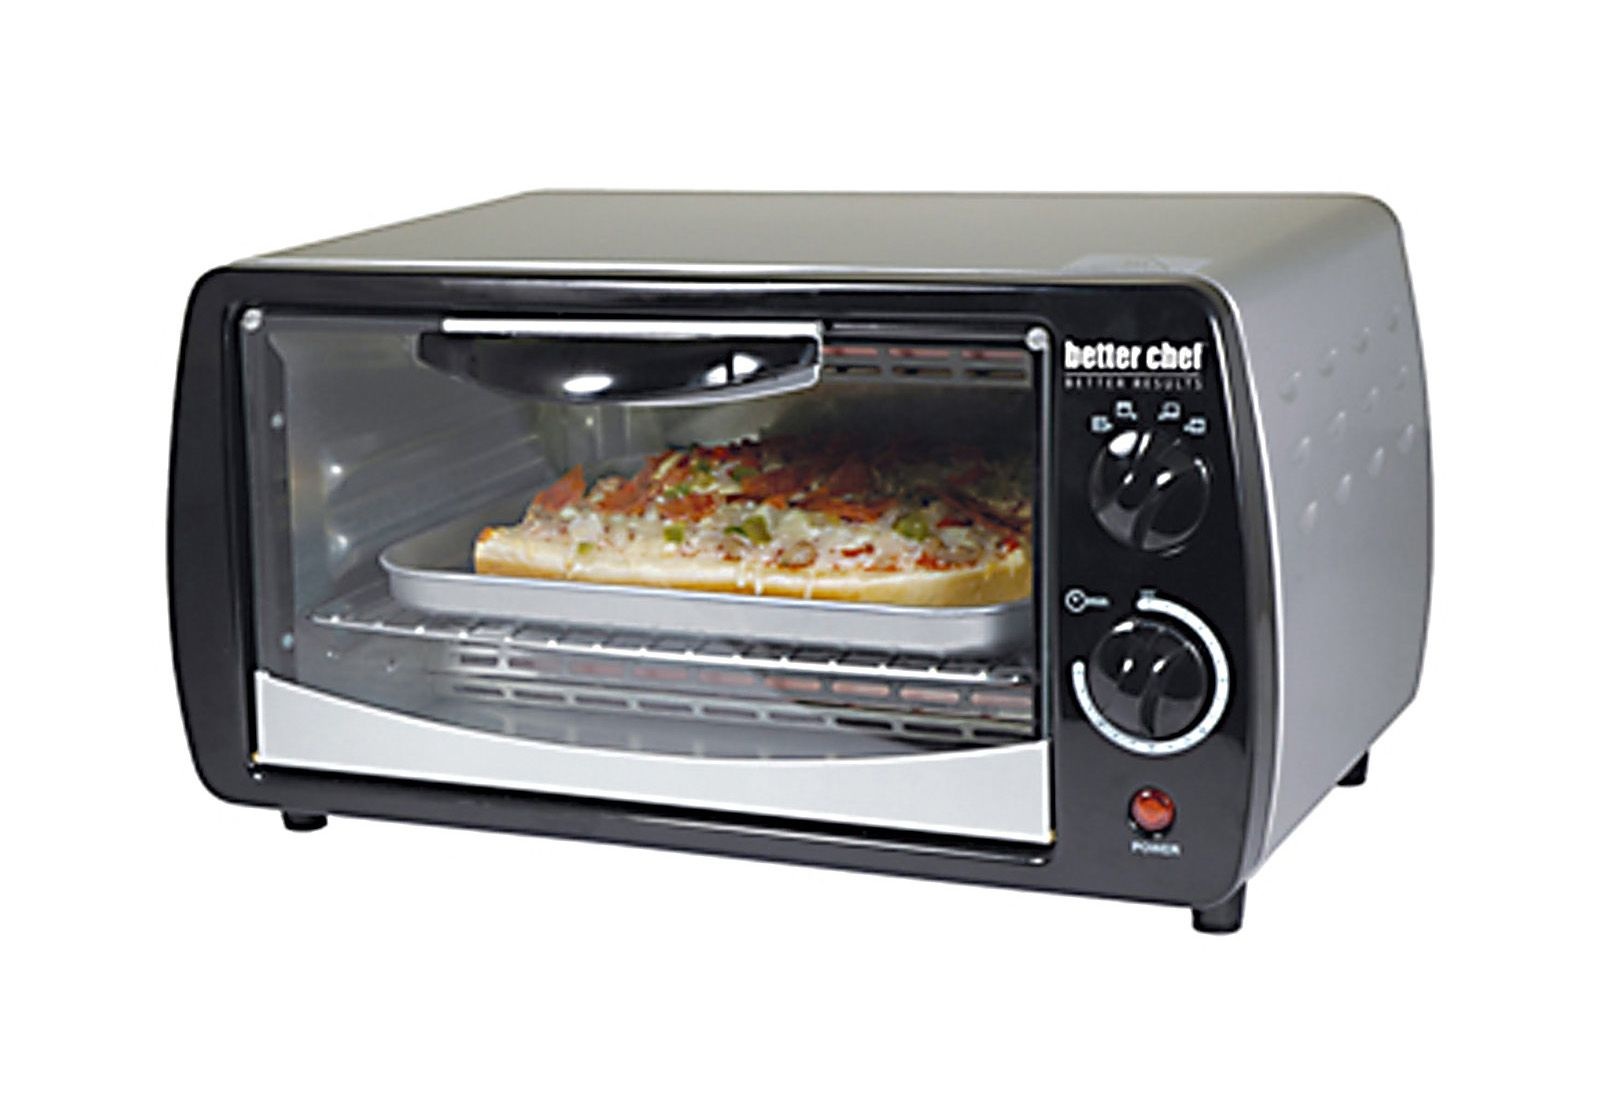 Better Chef Large Capacity 9 Liter Toaster Oven Silver Toaster Oven Stainless Steel Toaster Best Chef